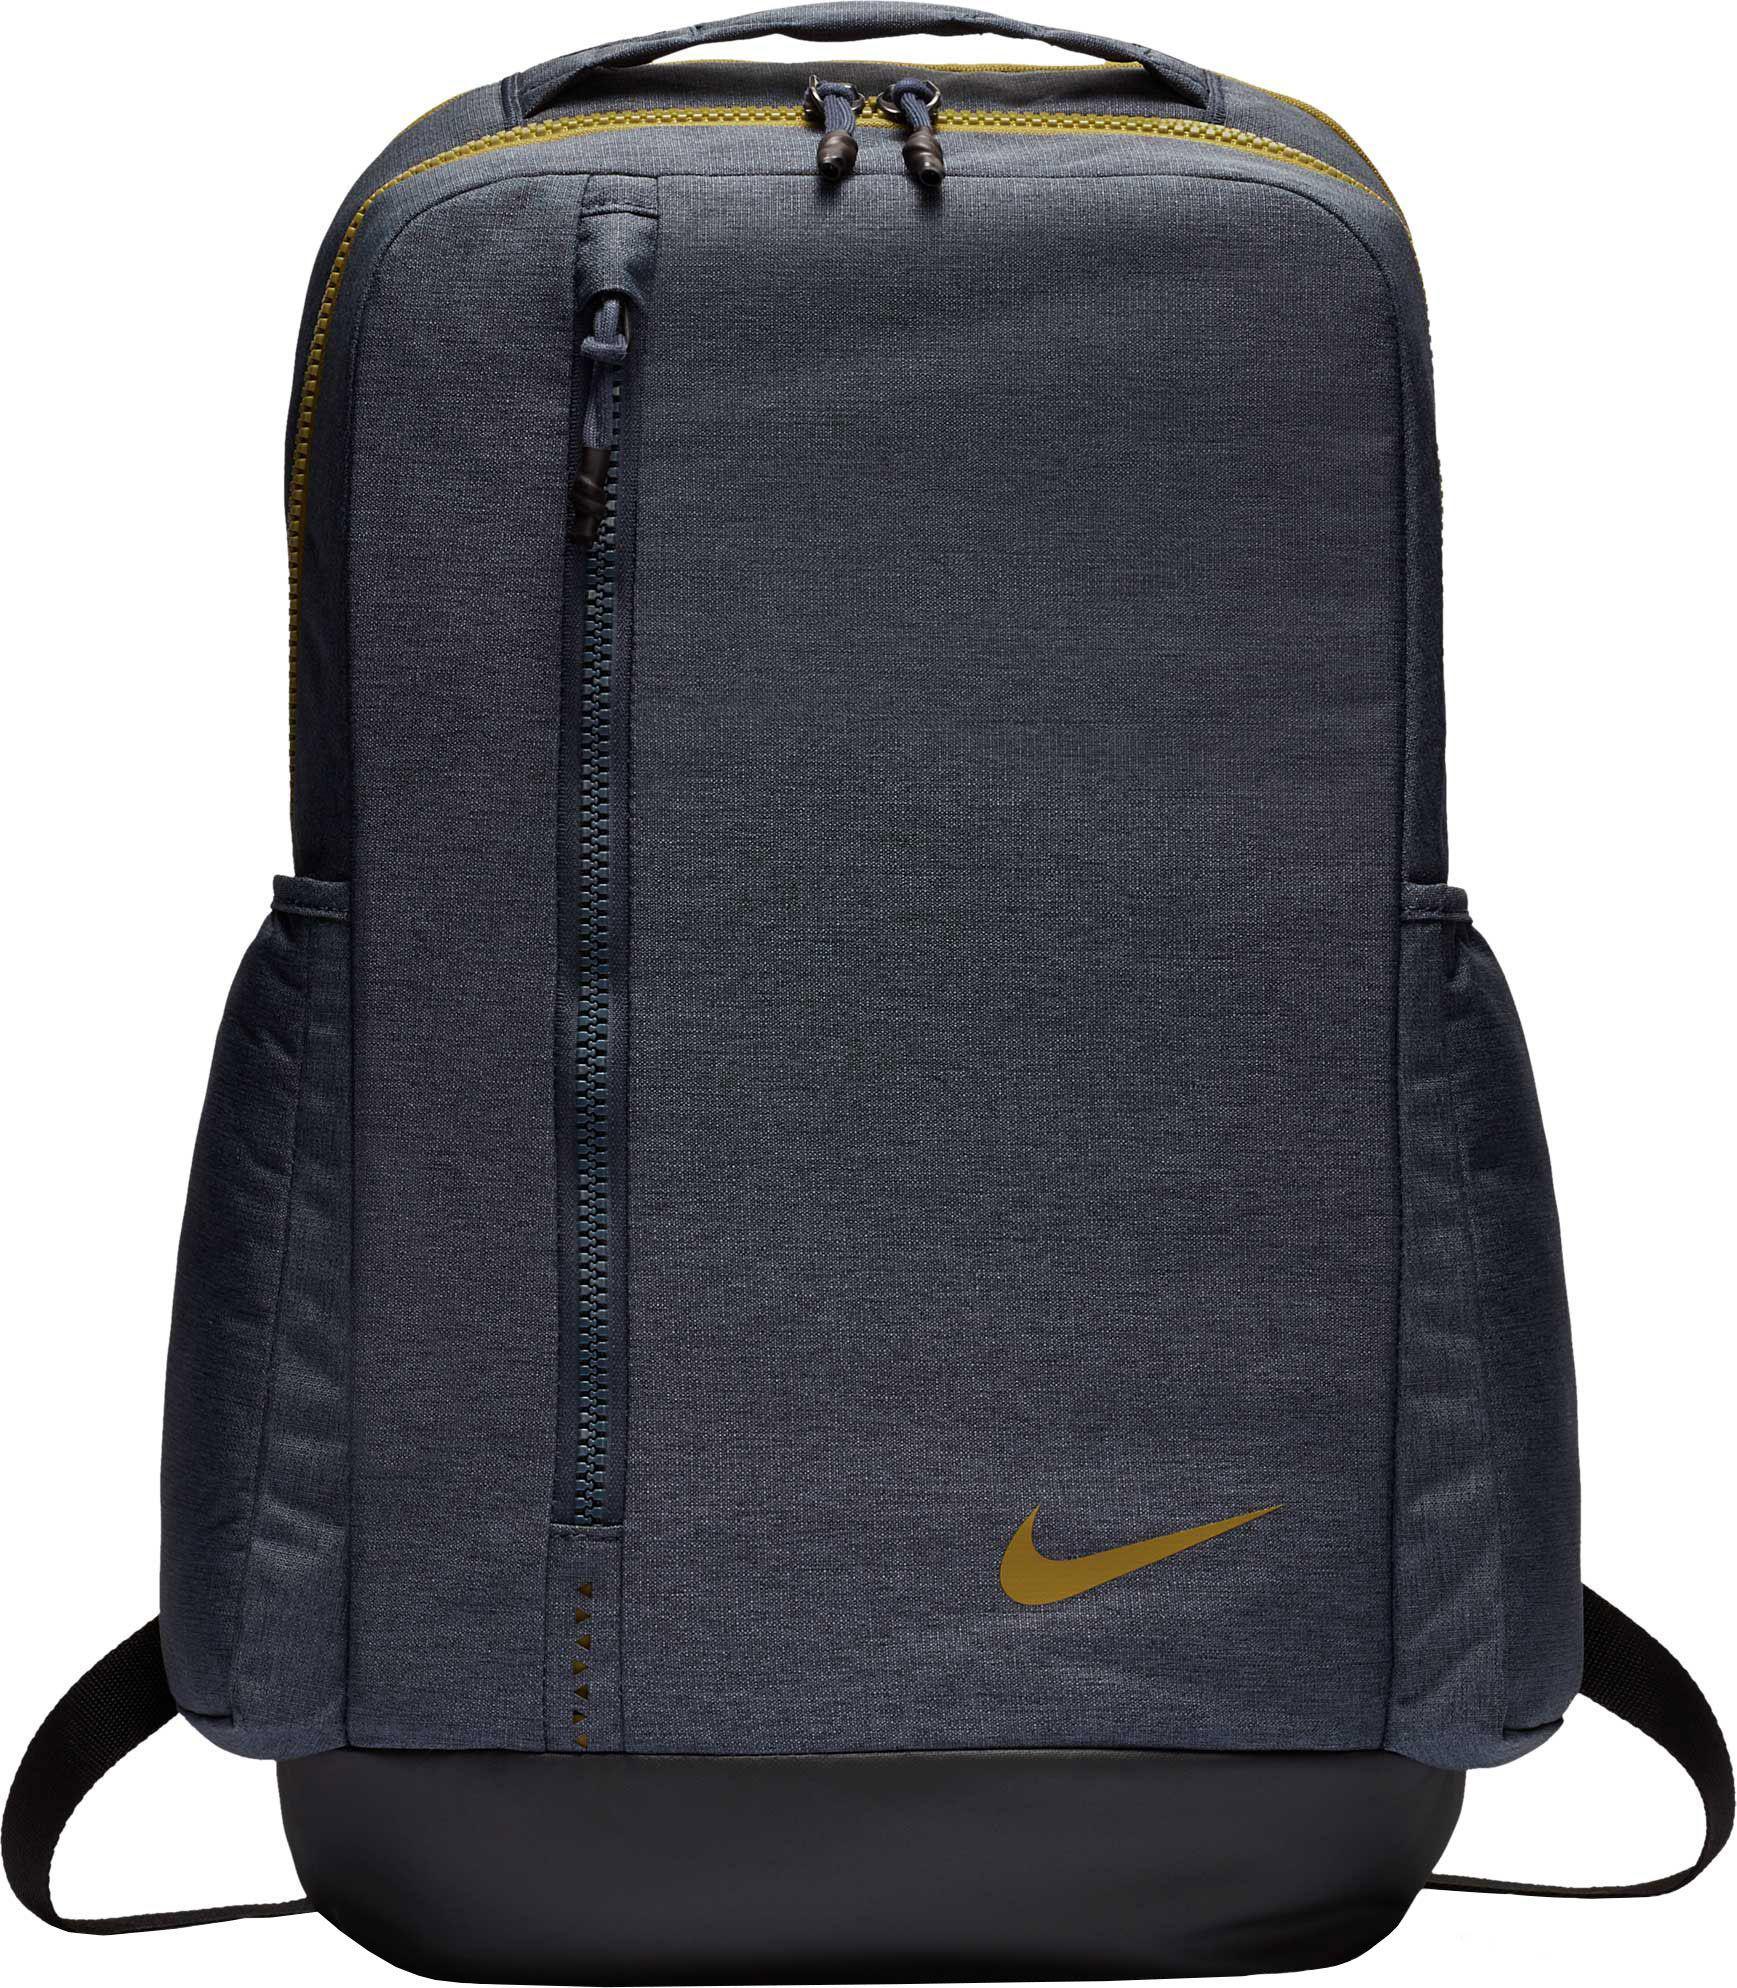 Lyst - Nike Vapor Power Heathered Training Backpack in Black for Men 31671a230